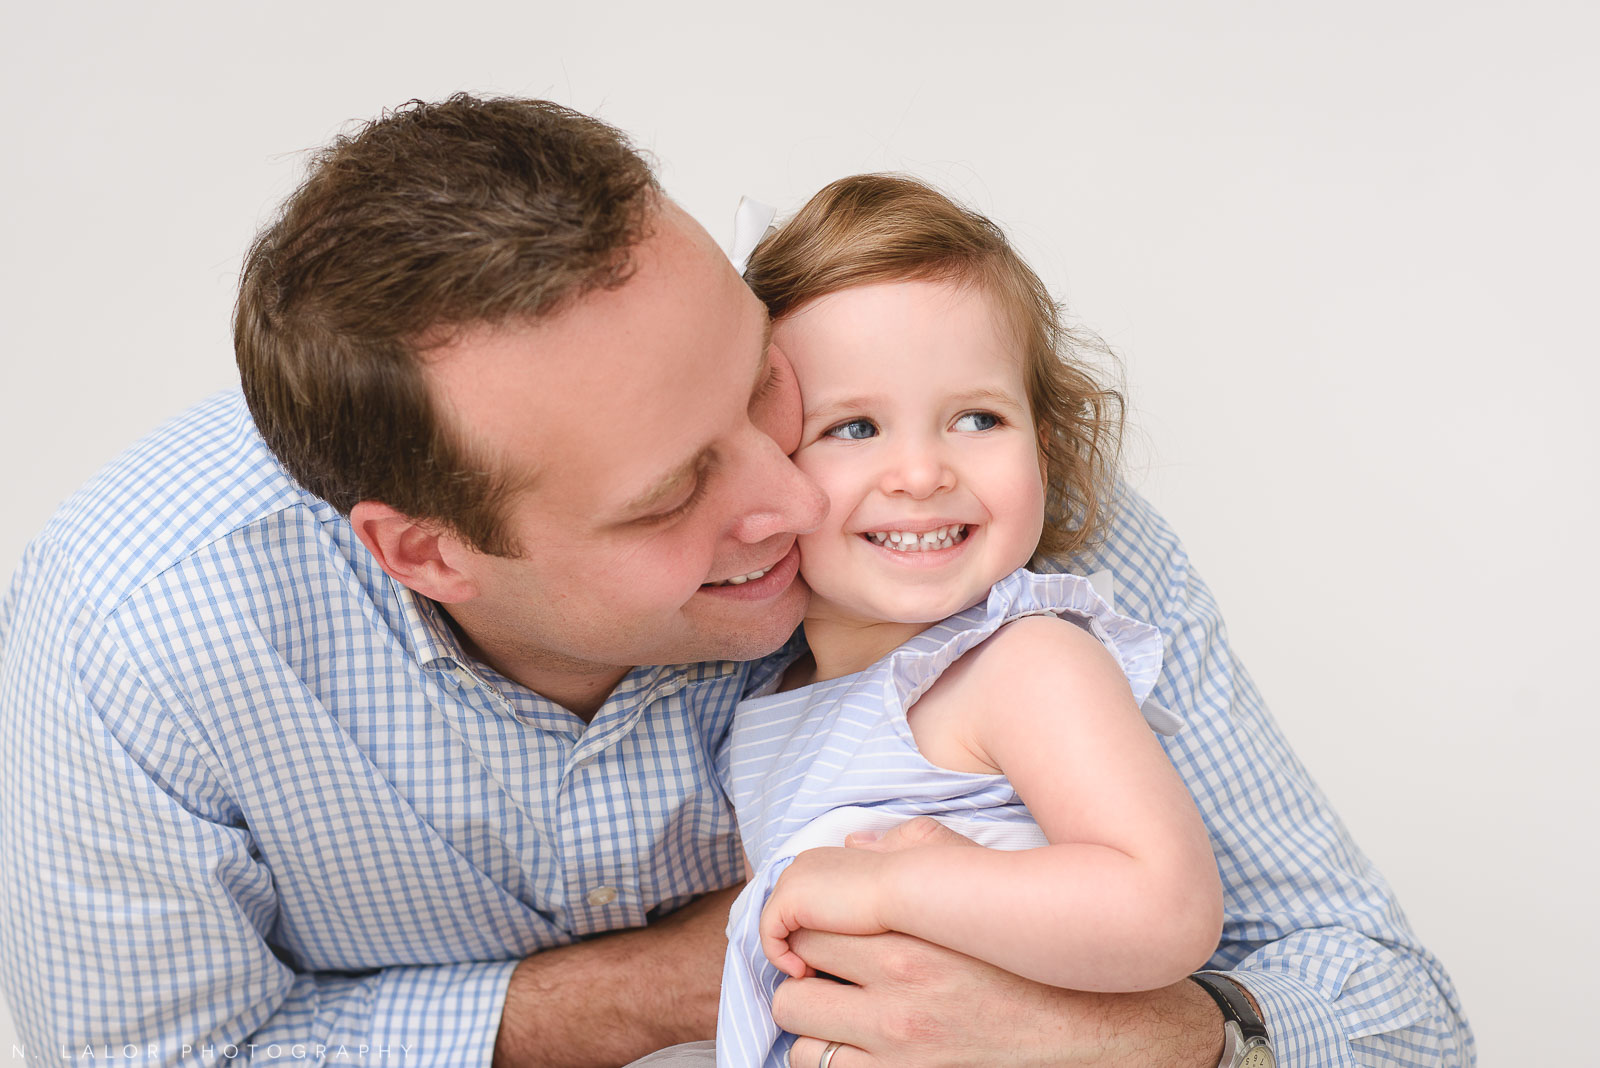 Sweet image of a Dad and his 2 year old girl.Studio portrait by N. Lalor Photography in Greenwich Connecticut.